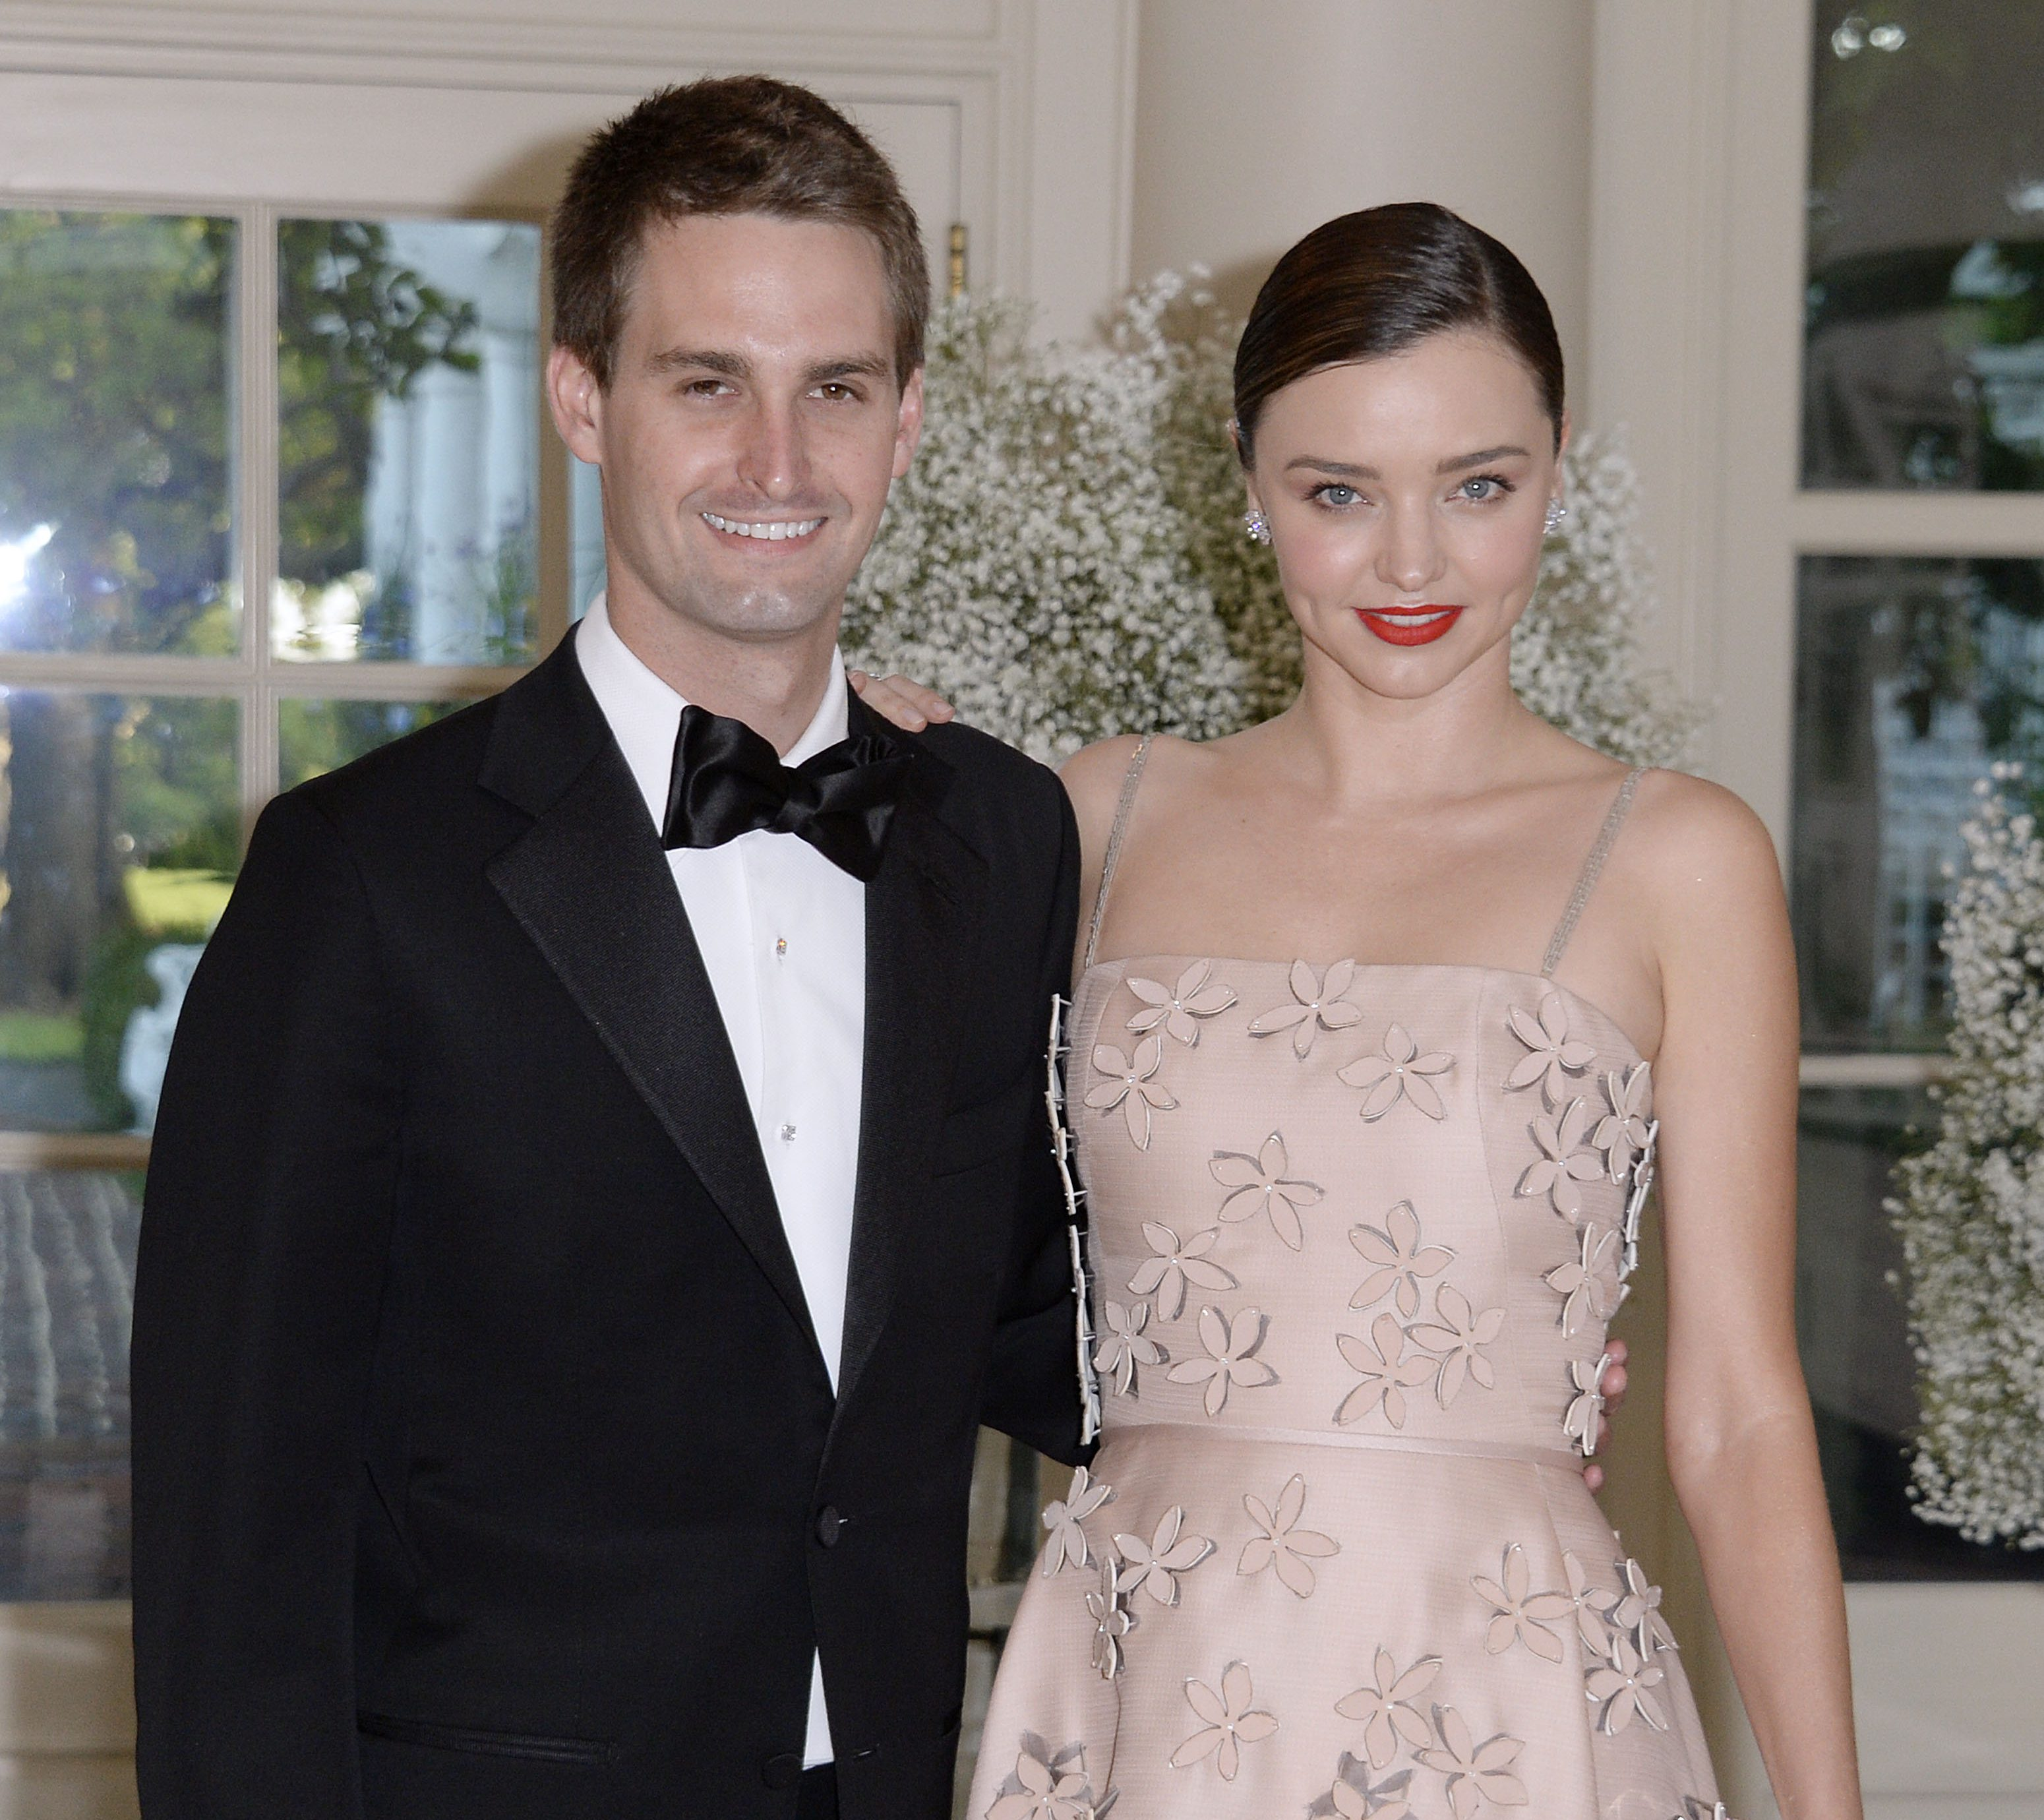 Miranda Kerr and her Snapchat CEO boyfriend, Evan Spiegel arrive at the state dinner in honor of President of Finland and the Prime Ministers of Norway, Sweden, Denmark and Iceland at the White House in Washington on May 13, 2016. (Getty)